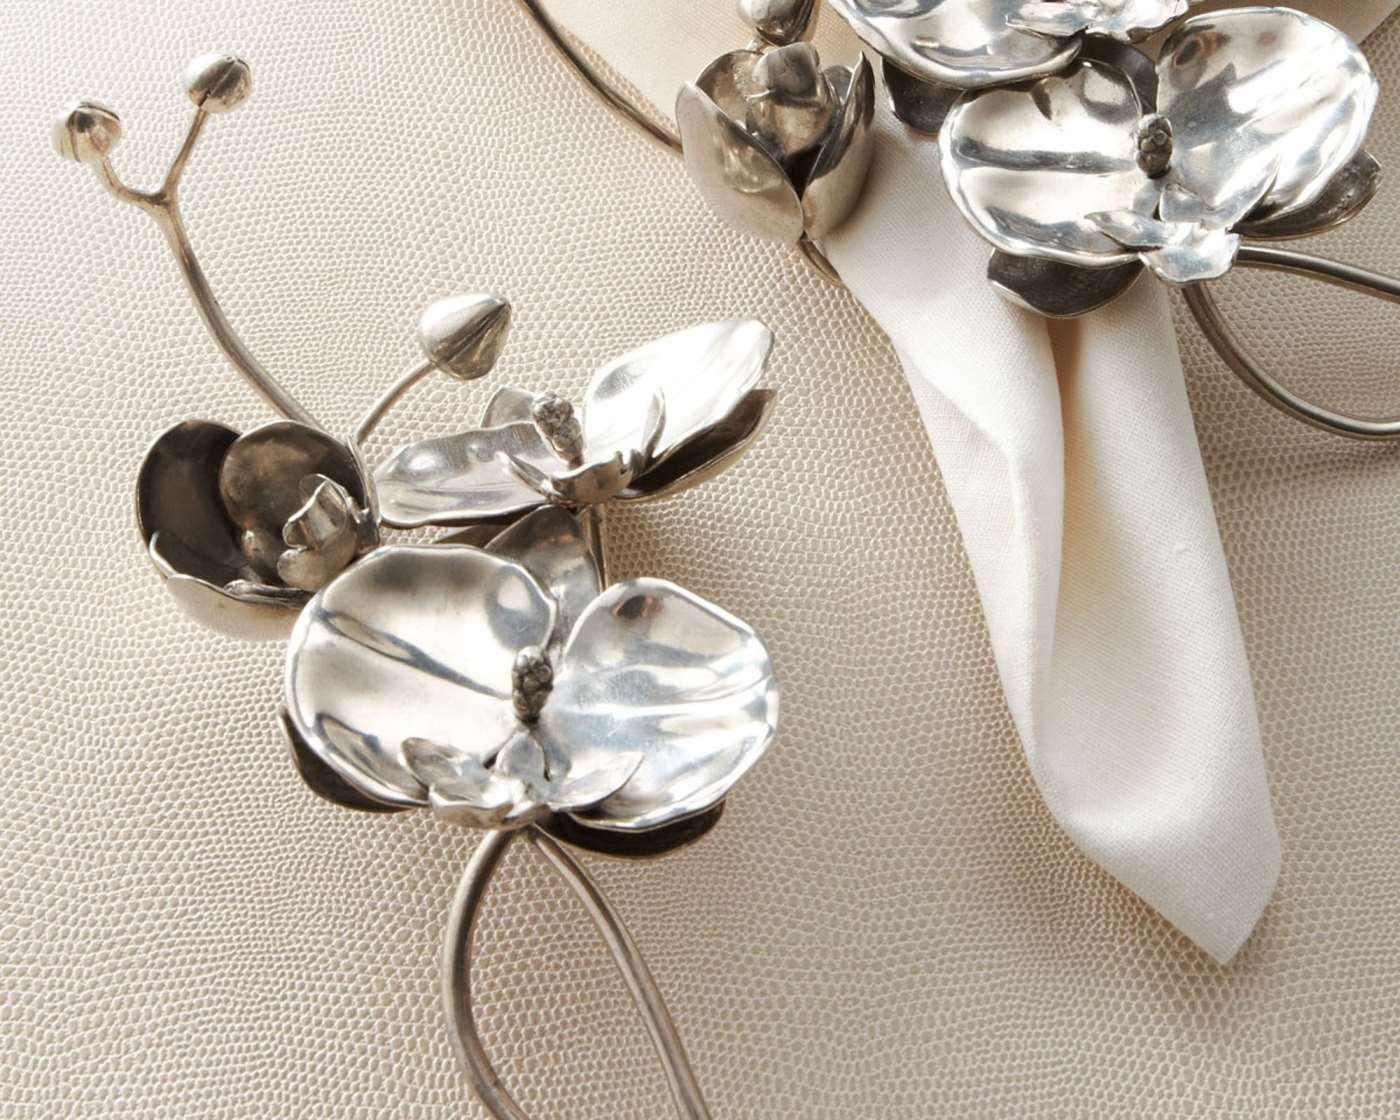 Vagabond House Pewter Orchid Napkin Ring 8'' Long by Vagabond House